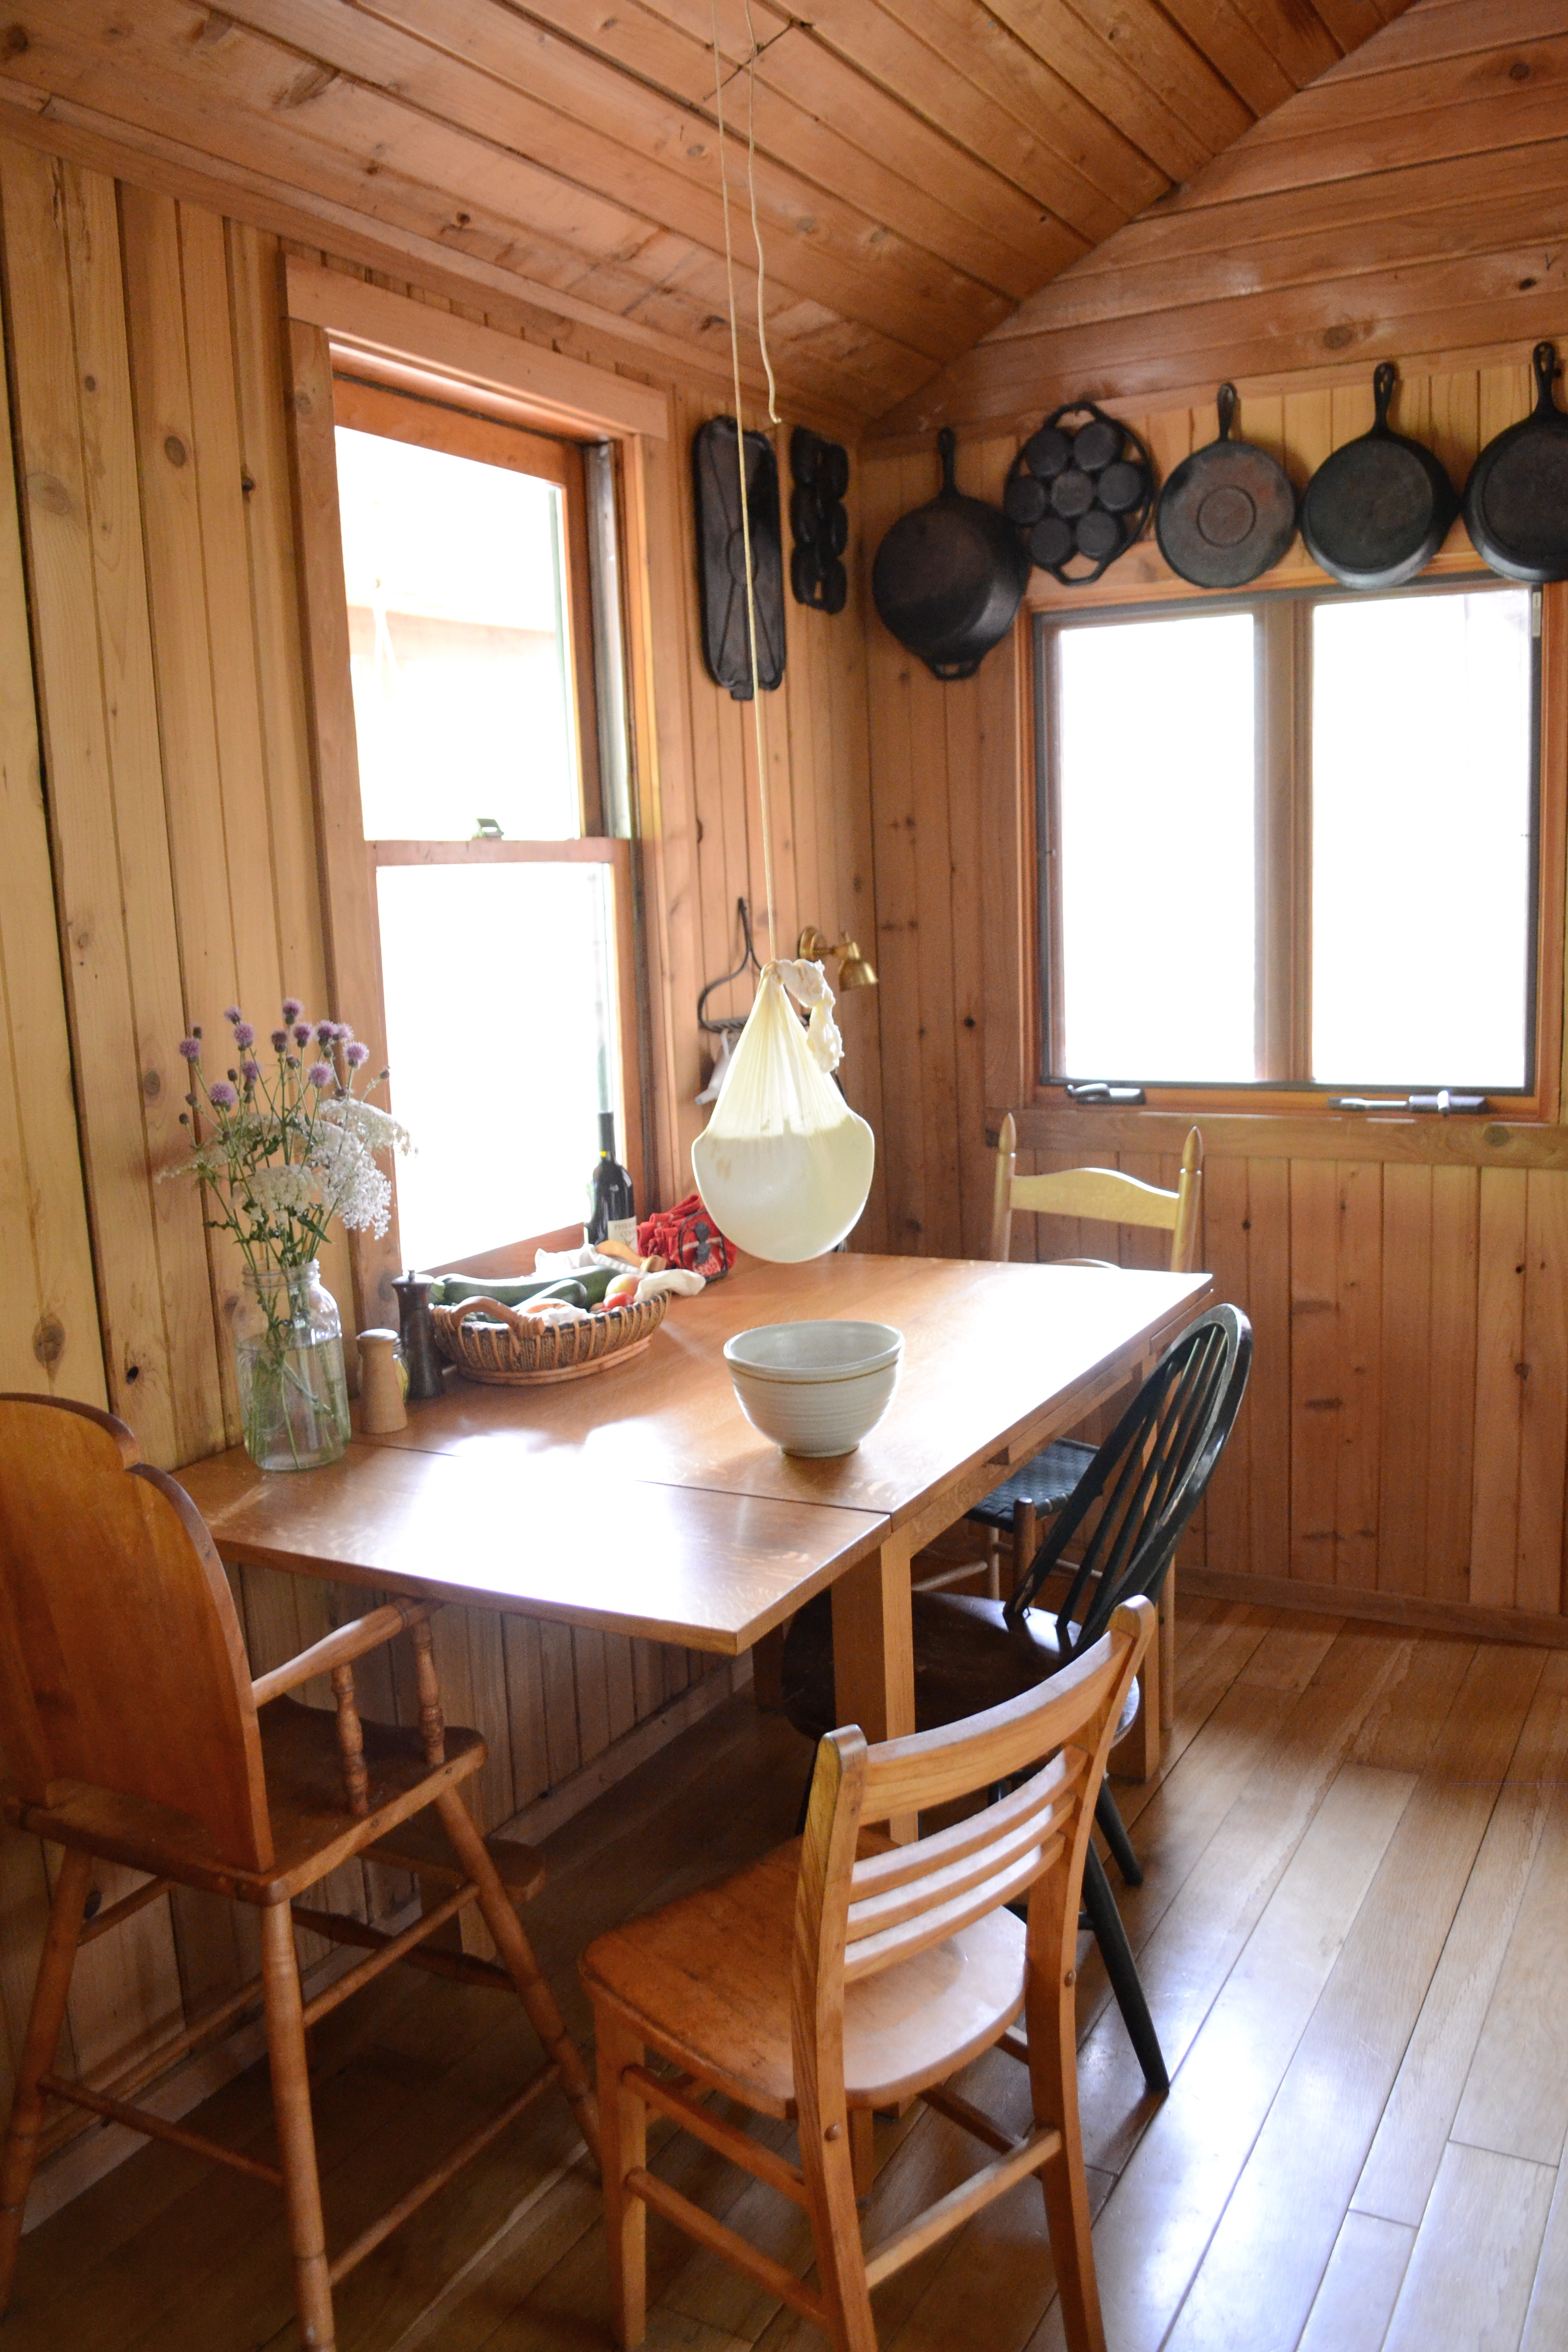 A Tour Of The Cabin Kitchen And Bathroom